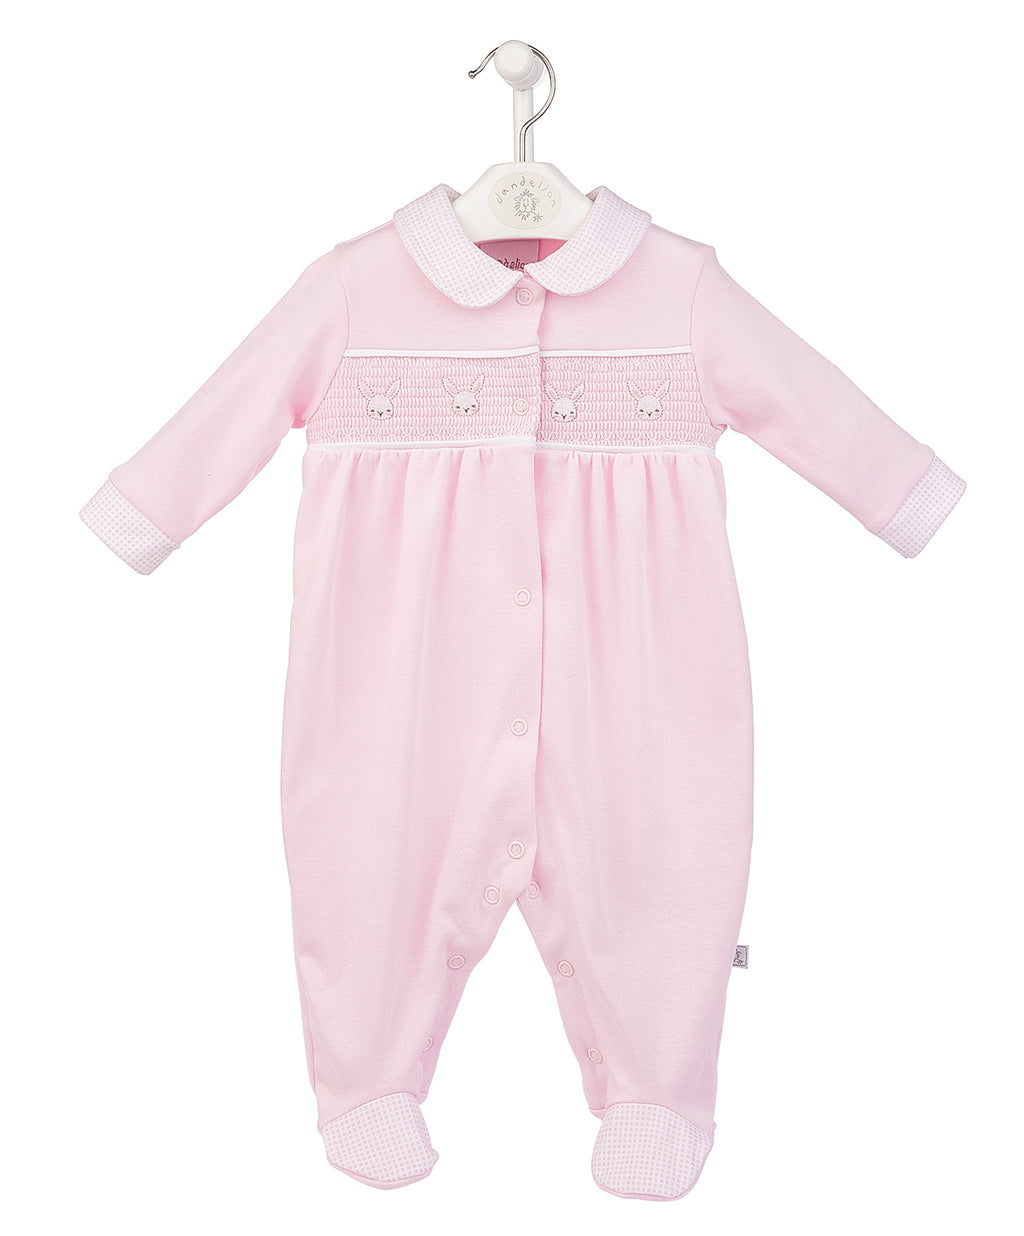 Bunny Smocked Cotton Sleepsuit